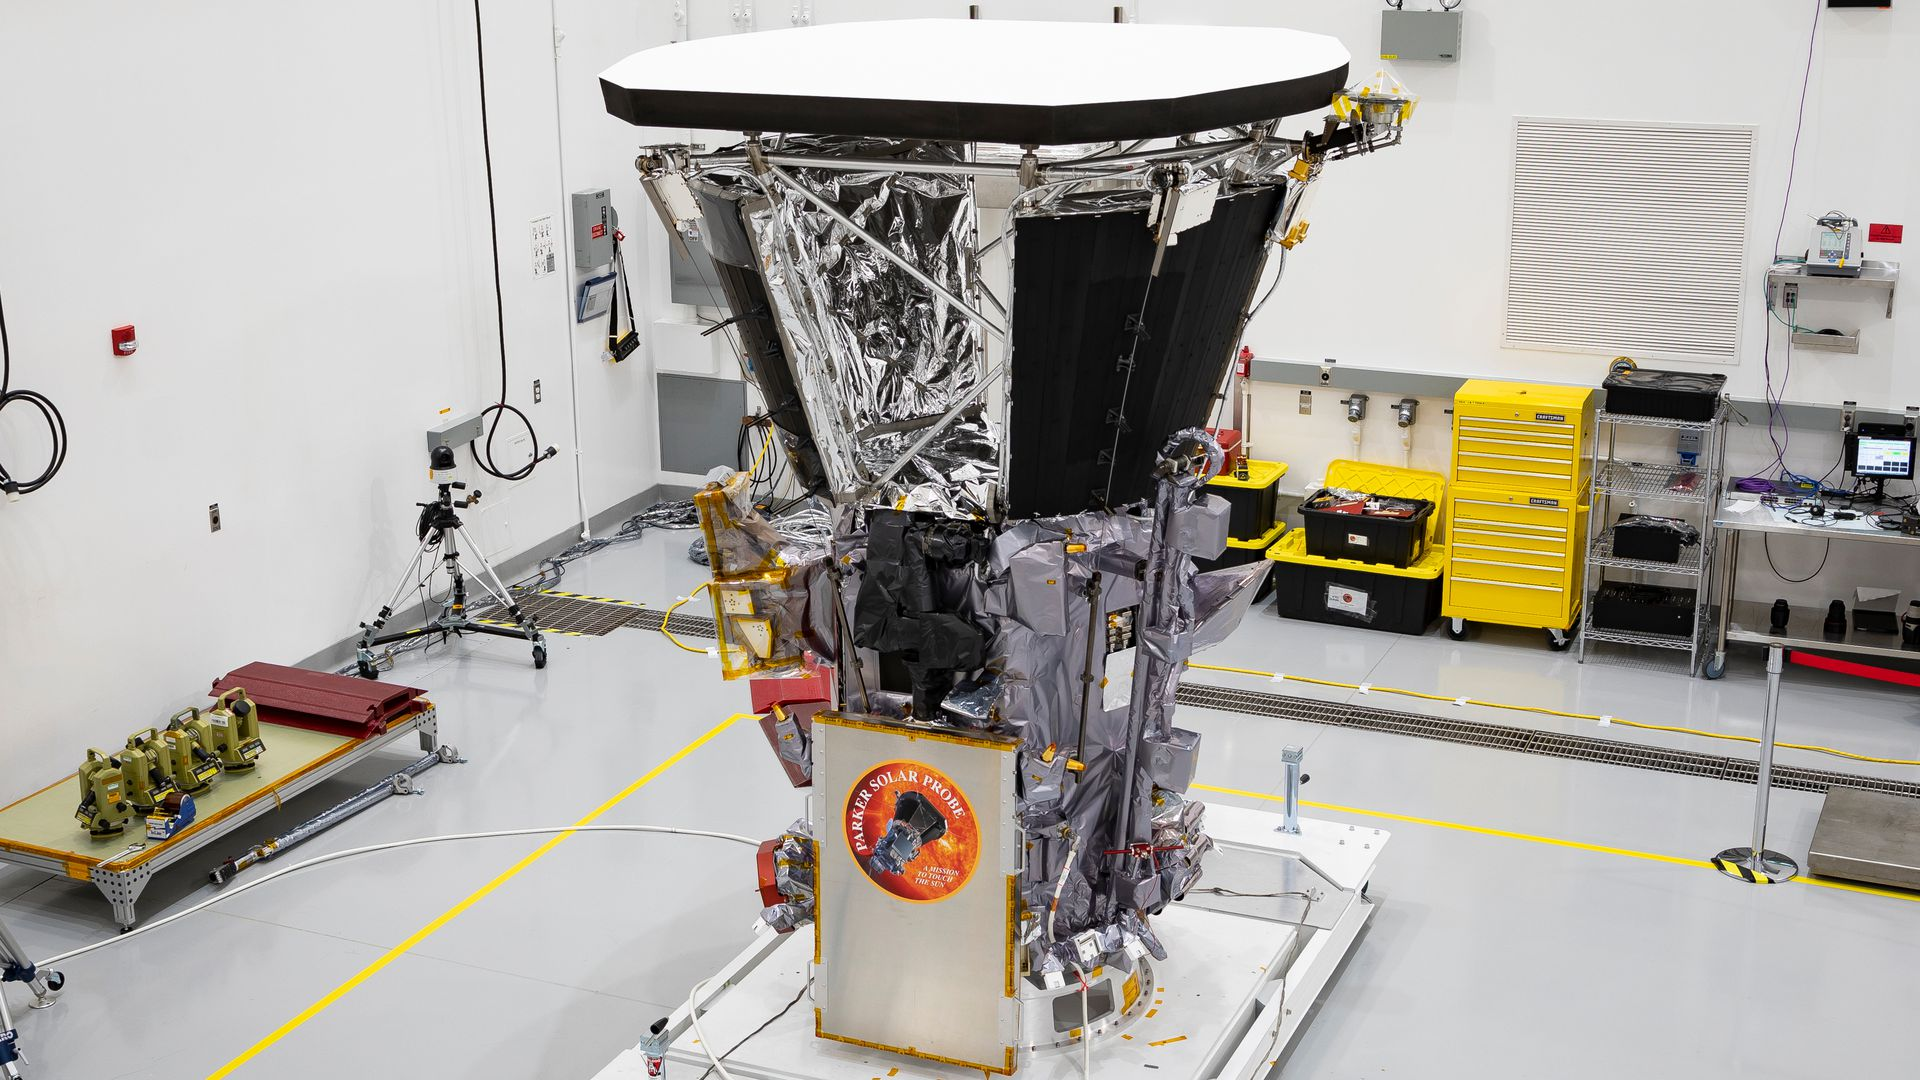 Parker Solar Probe sits in a clean room on July 6, 2018, at Astrotech Space Operations in Titusville, Florida, after the installation of its heat shield.